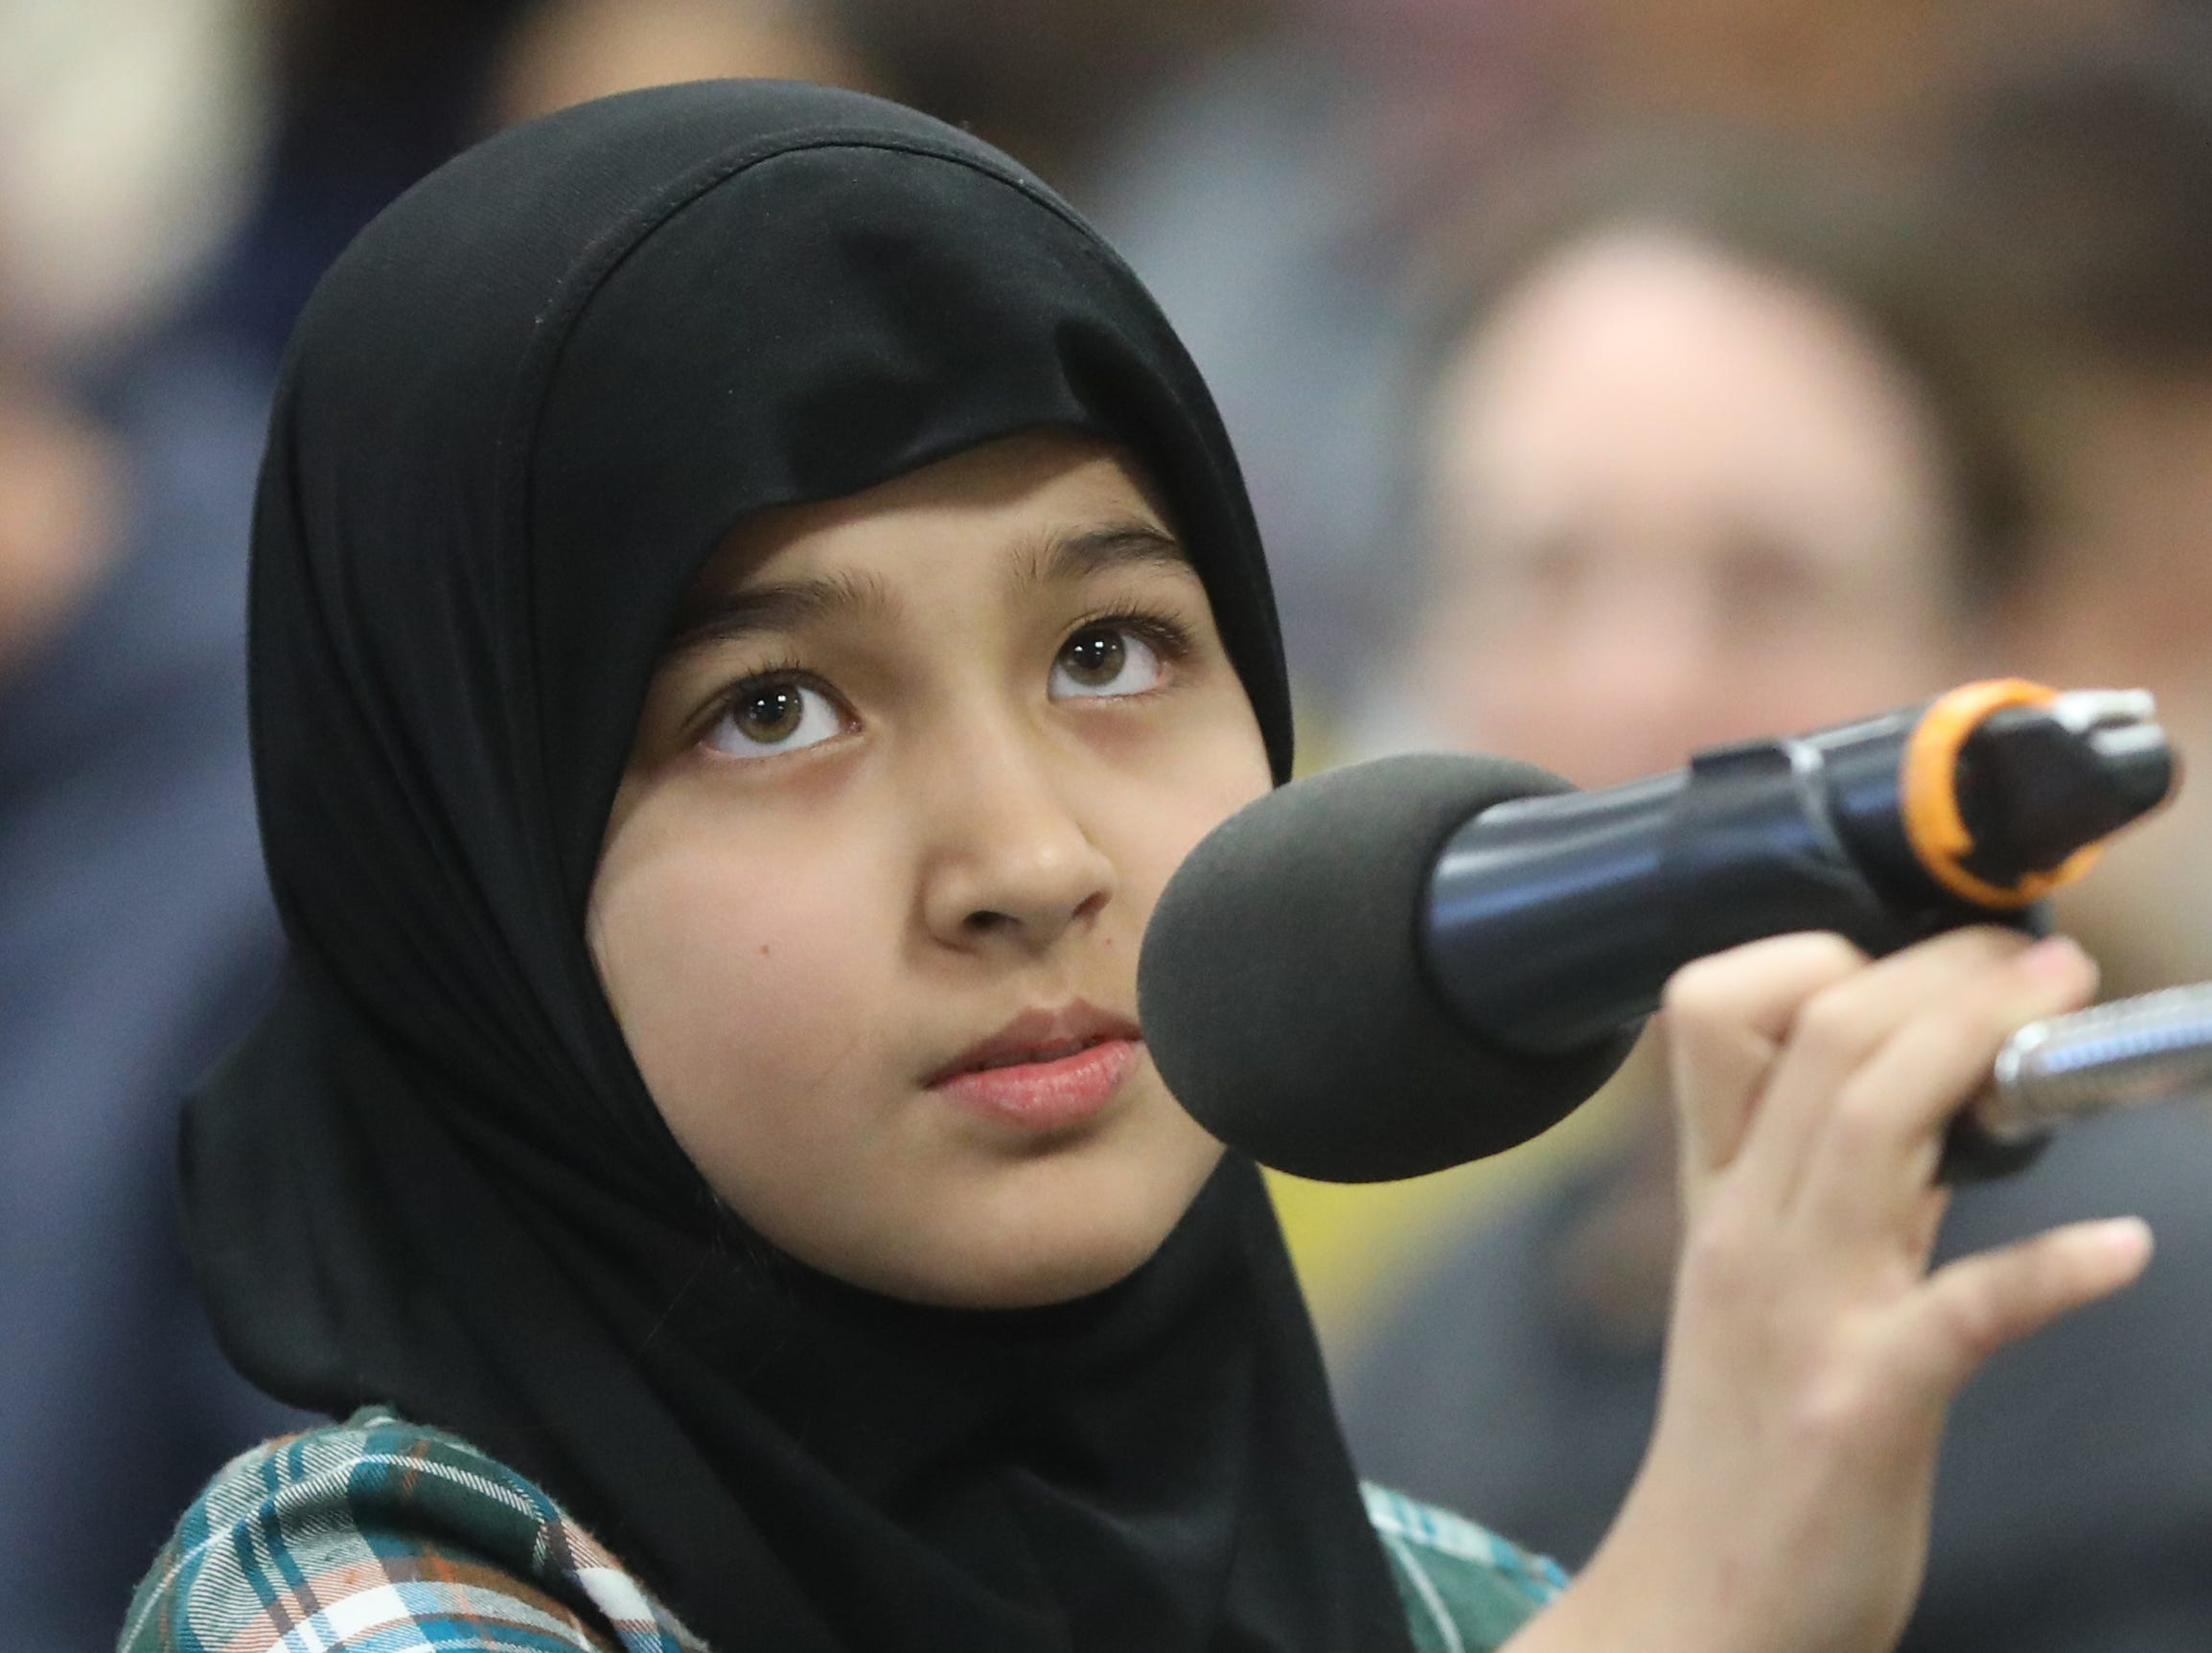 AishaShafoat, of Paramus, competes in the first round of the 2019 North Jersey Spelling Bee, in Paramus. Thursday, March 14, 2019